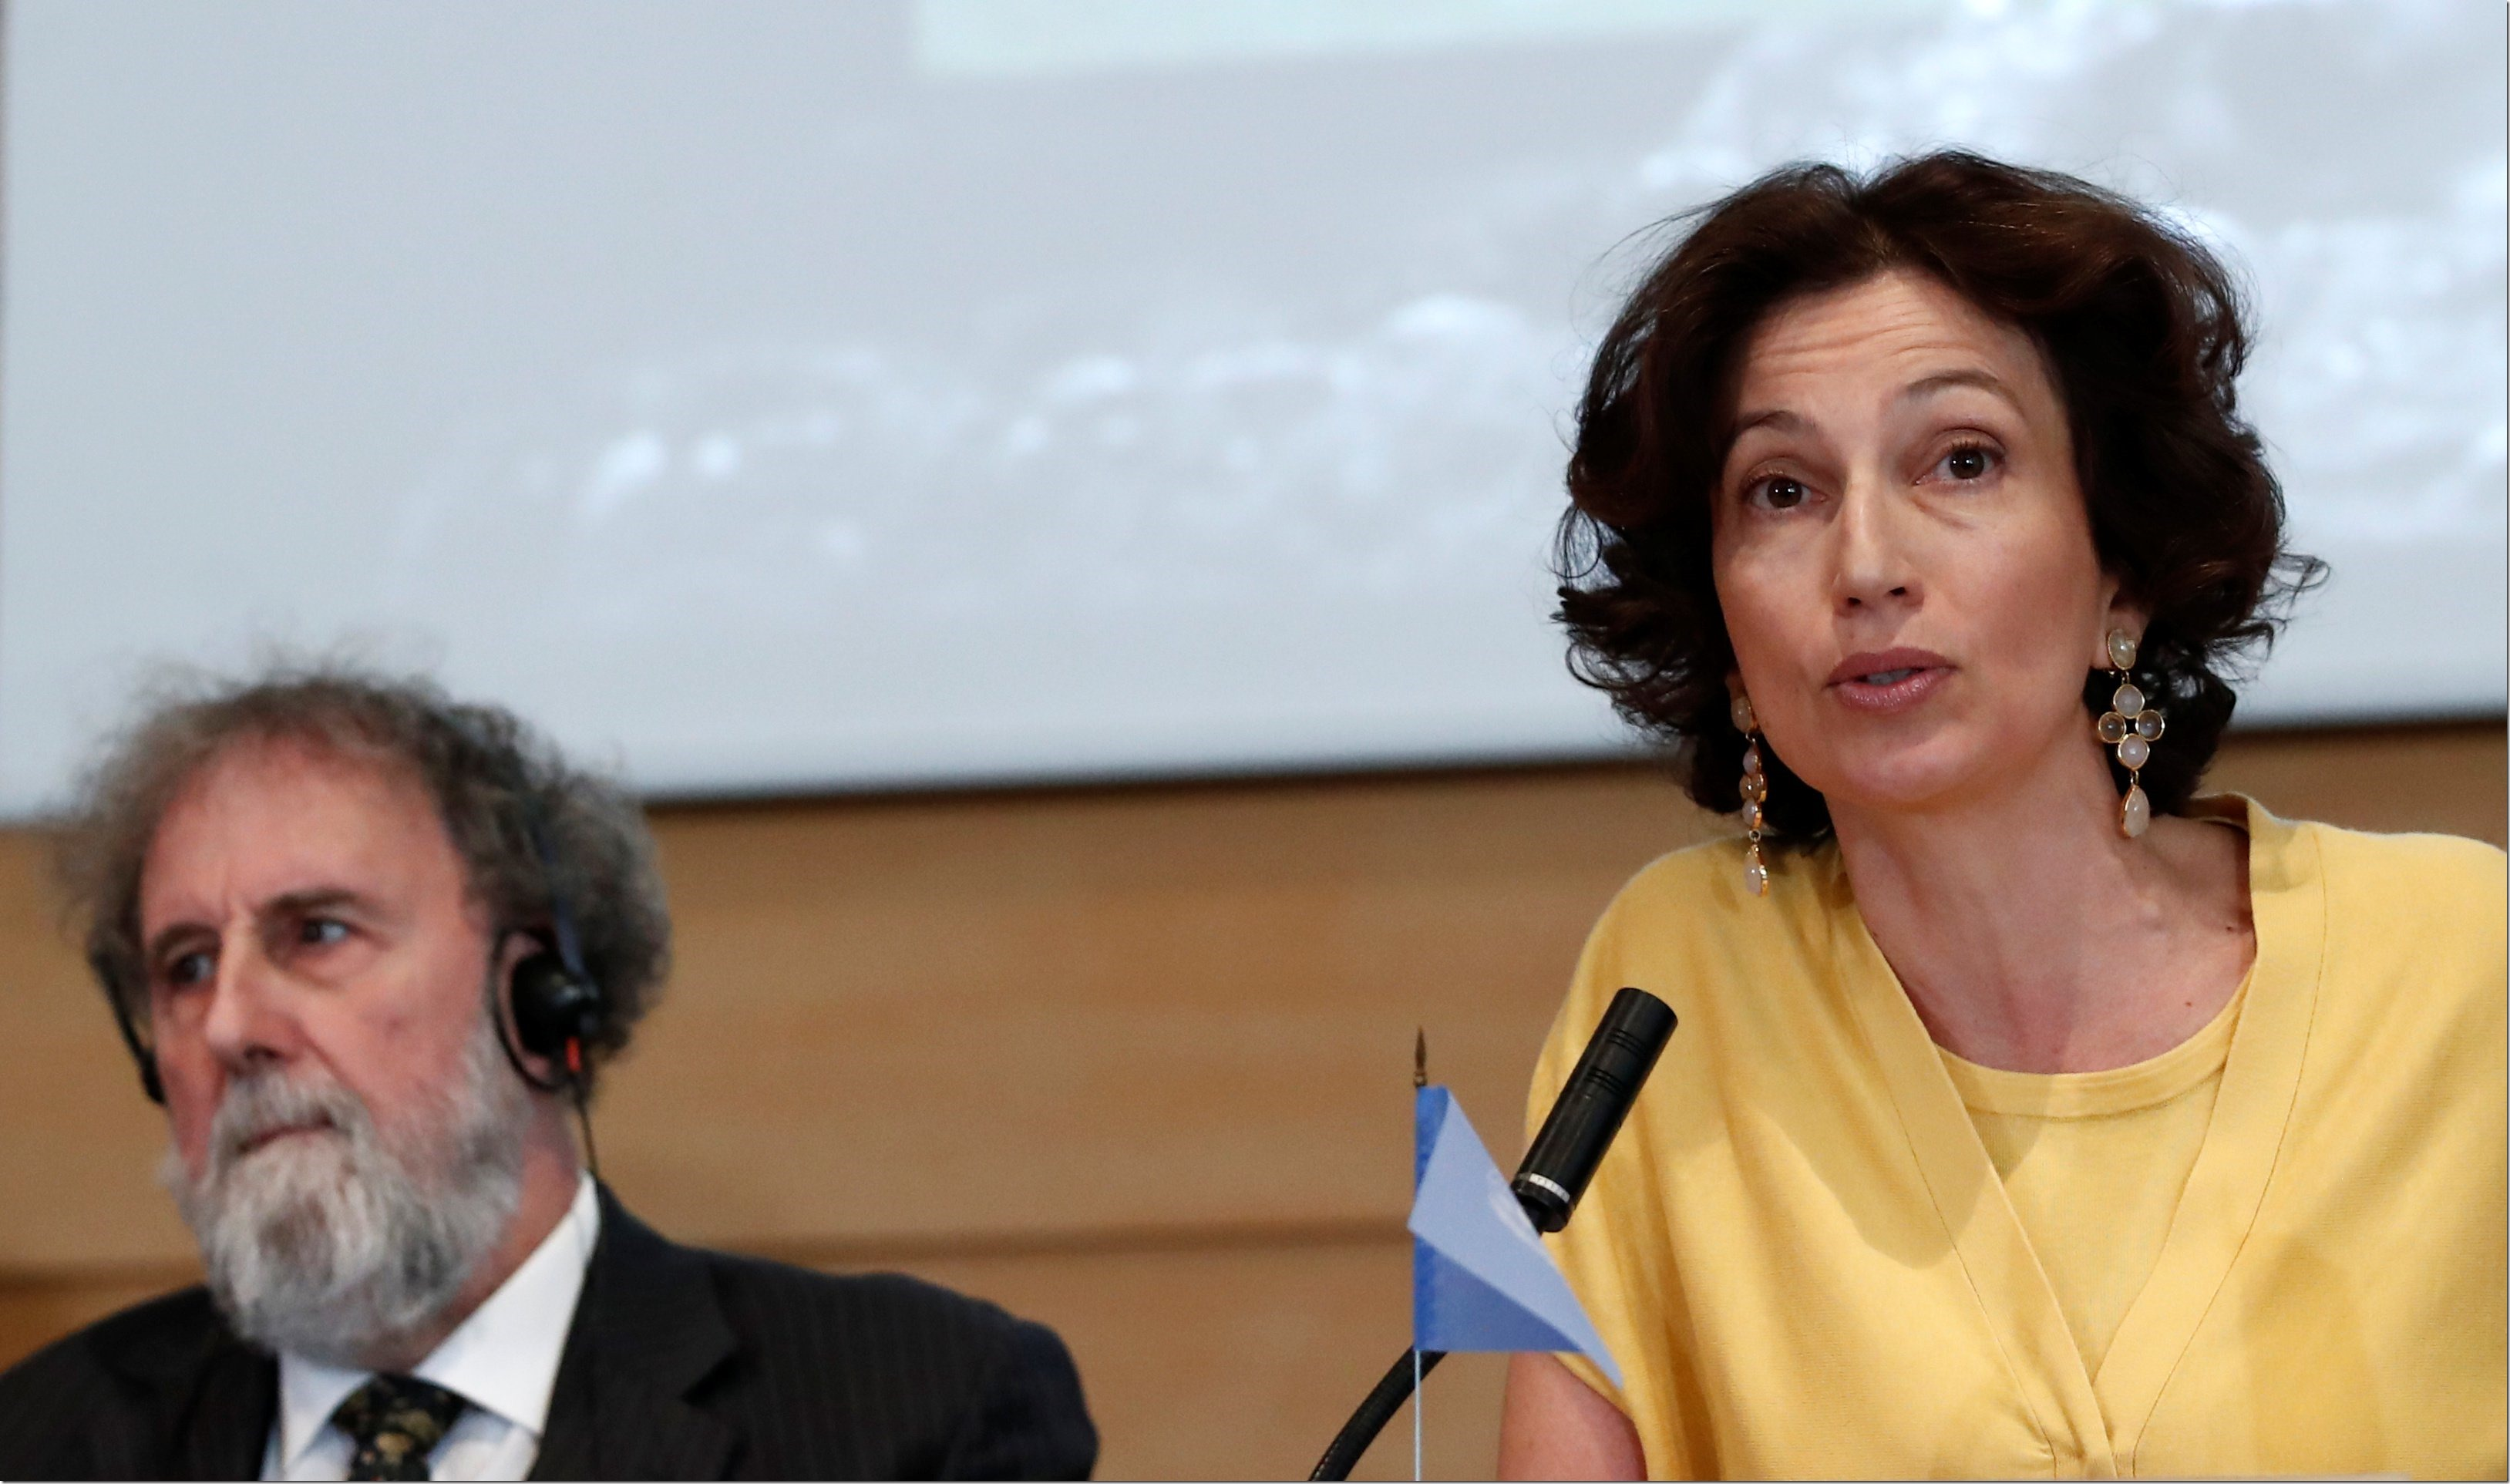 Audrey Azoulay, Director-General of UNESCO and former IPBES Chair Robert Watson attend a news conference on the launching of a landmark report on the damage done by modern civilisation to the natural world by the IPBES at the UNESCO headquarters in Paris, France, May 6, 2019. REUTERS/Benoit Tessier